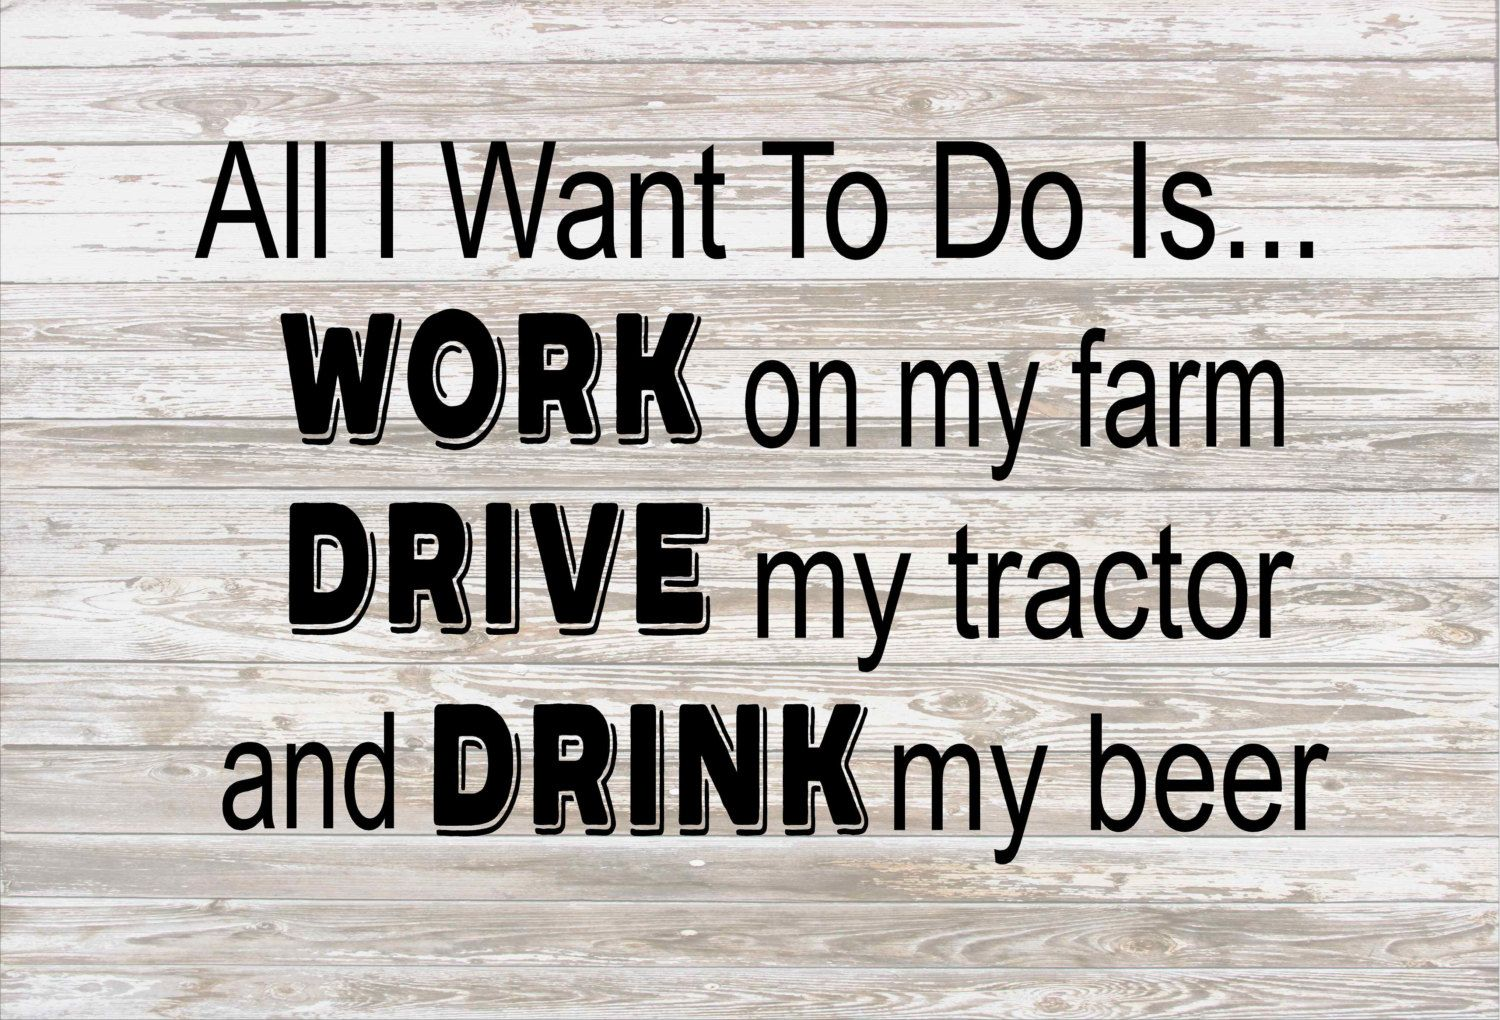 All I Want To Do Is Work On My Farm Drive Tractors Drink Beer Wood Sign Beer Wood Drinking Beer Wood Signs